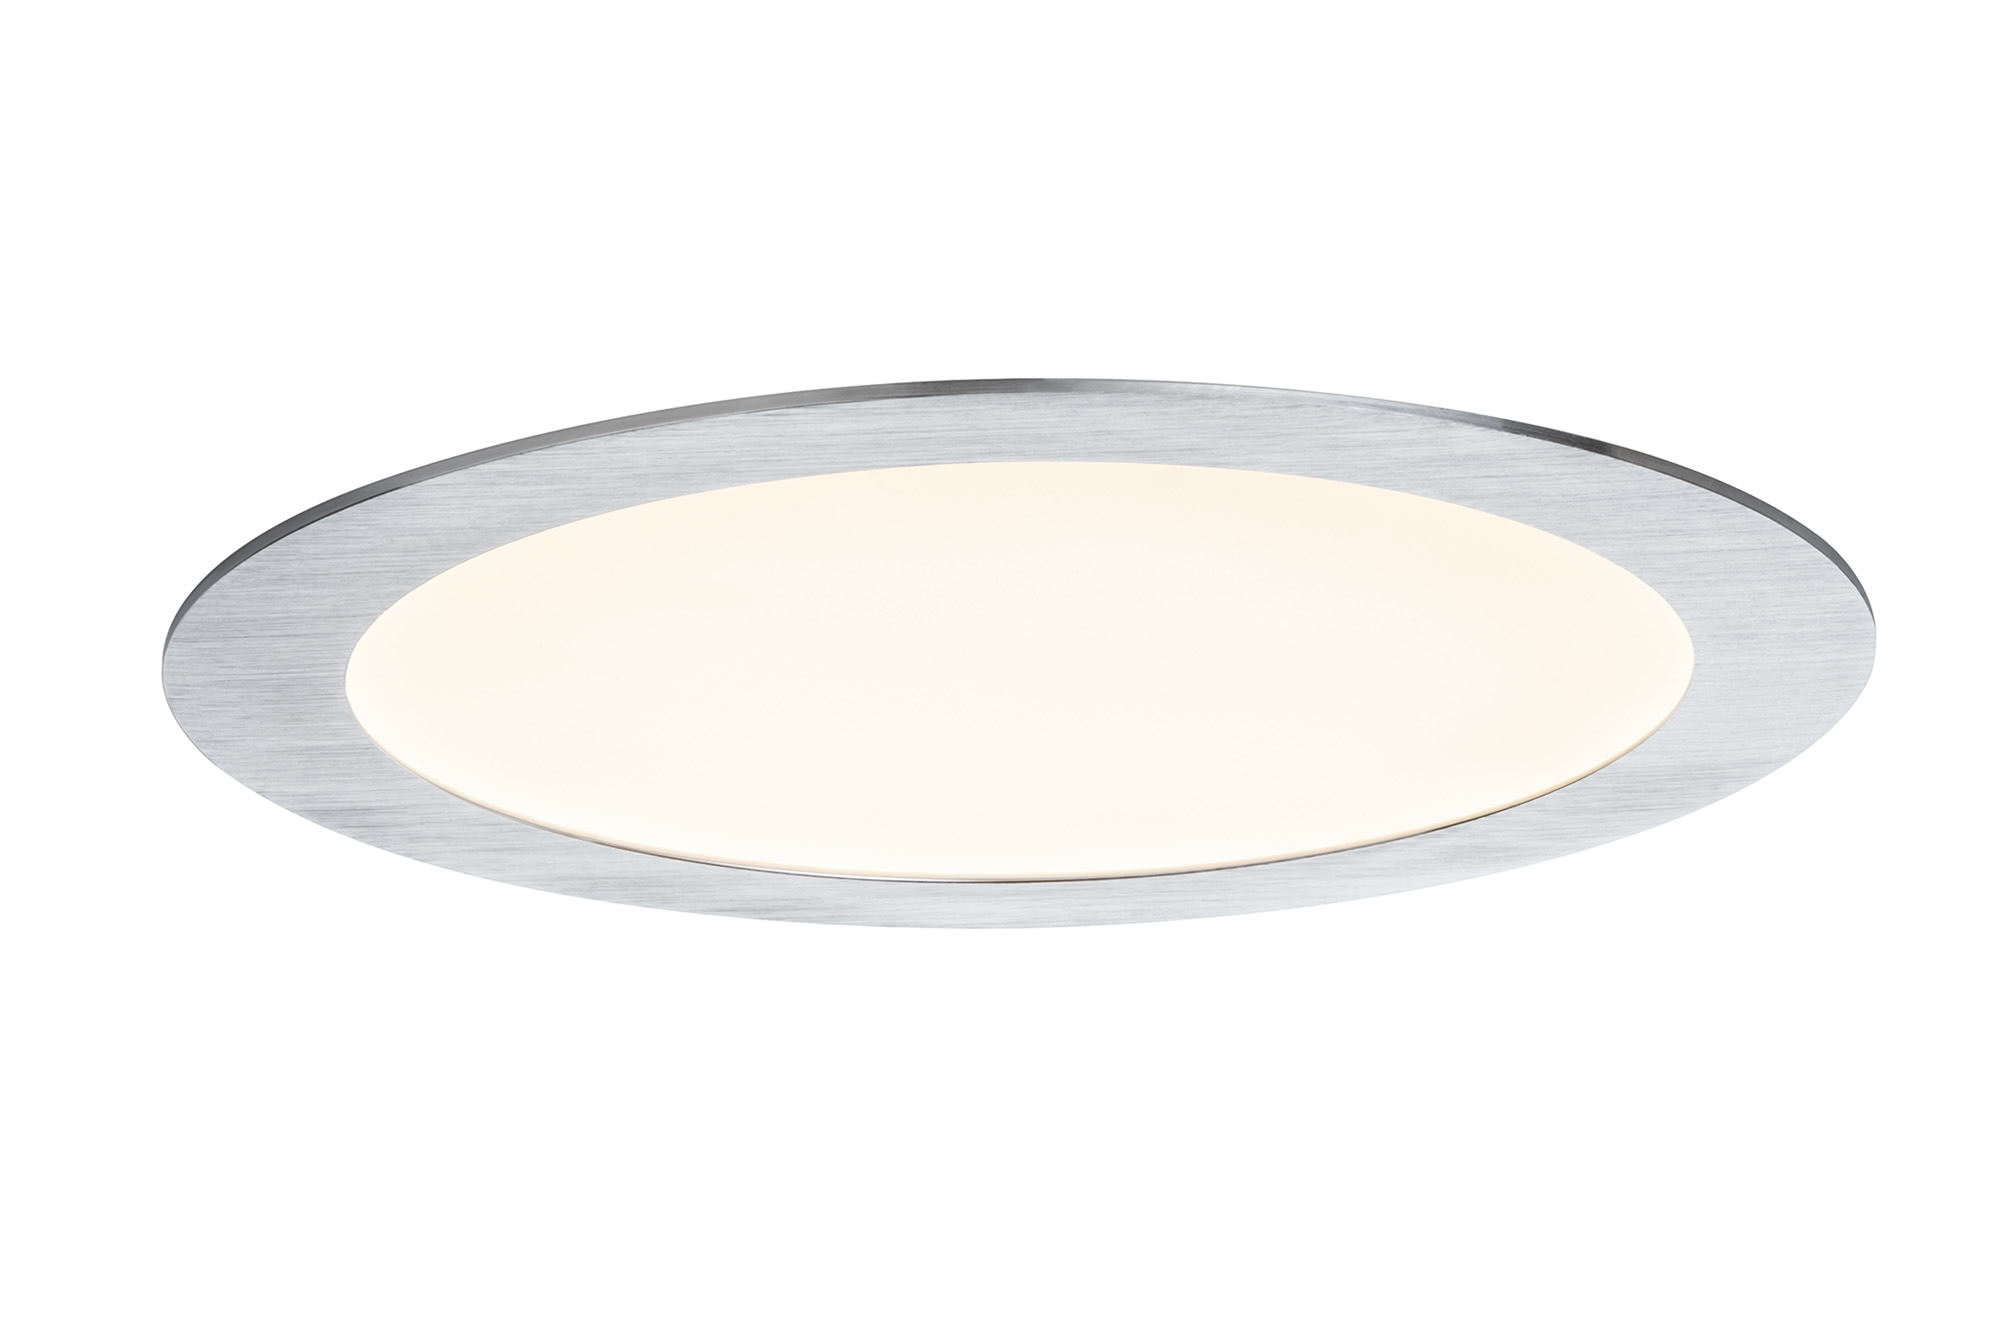 92719 Premium EBL Panel ? LED 1x15W Al-g The Premium LED recessed panel provides optimum light distribution and is highly versatile thanks to its flat installation depth. 927.19 Recessed panel Premium Line 13 W LED brushed aluminium Warm white, round, 1-pc. set Paulmann